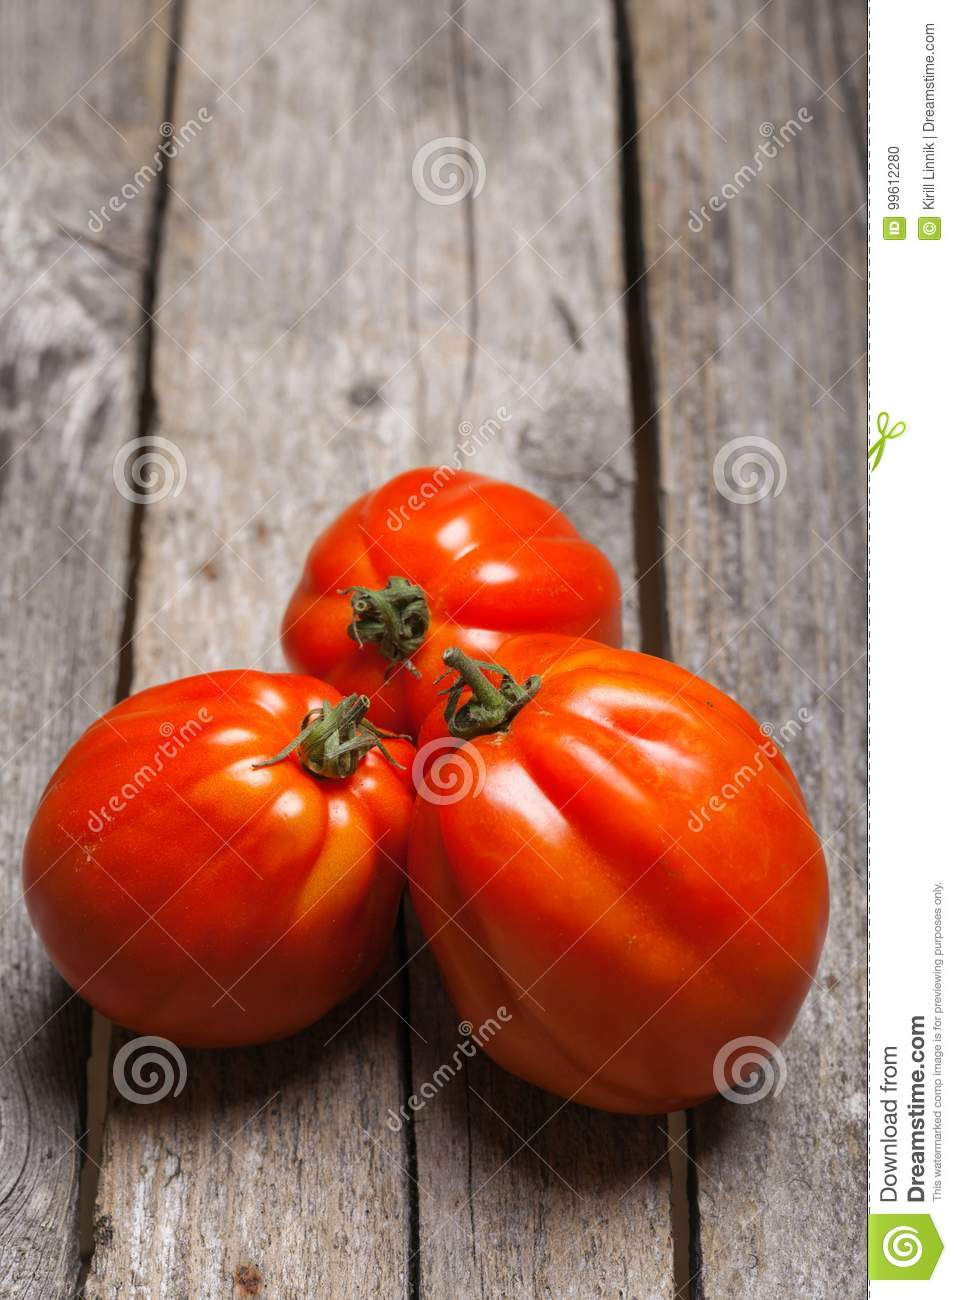 Download Tomatoes on the table stock photo. Image of ingredient - 99612280